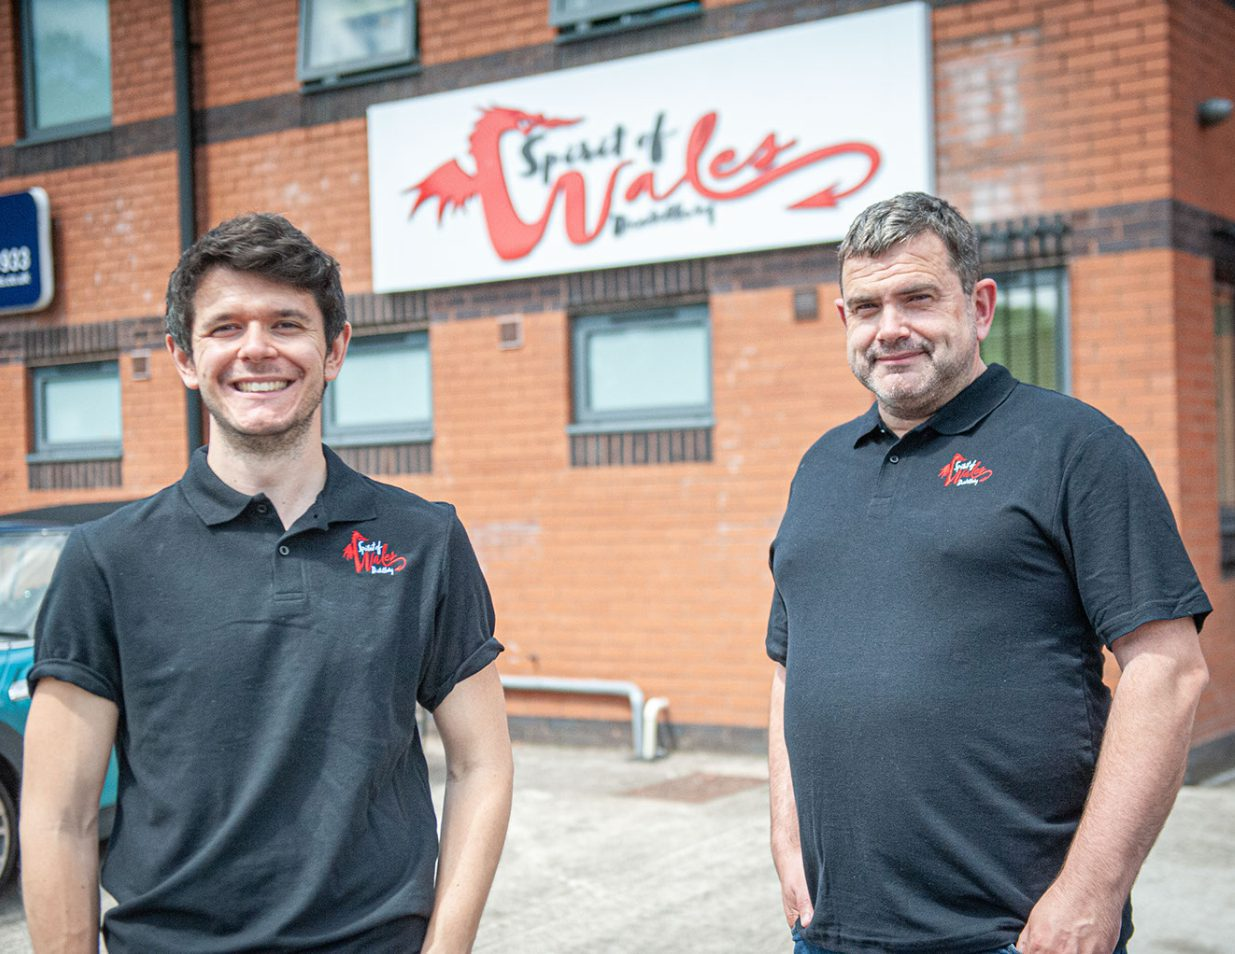 Spirit of Wales Distillery production manager James Gibbons and founder Daniel Dyer